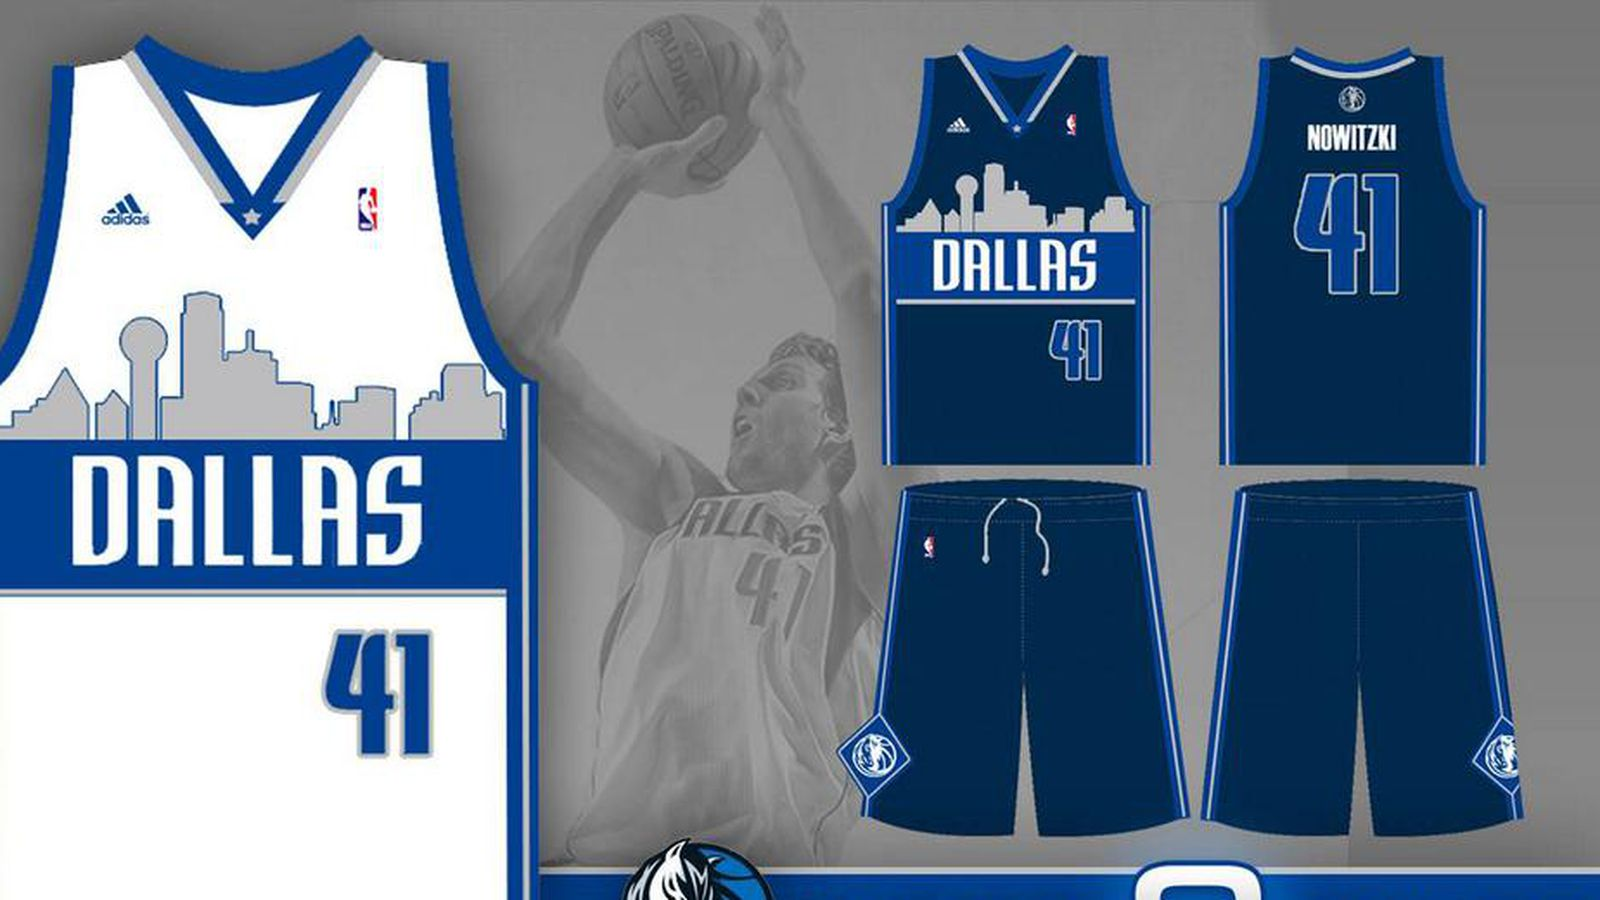 d32e887dfaa3 Mavericks introduce new alternate jerseys with Dallas skyline for the 2015-16  season - Mavs Moneyball